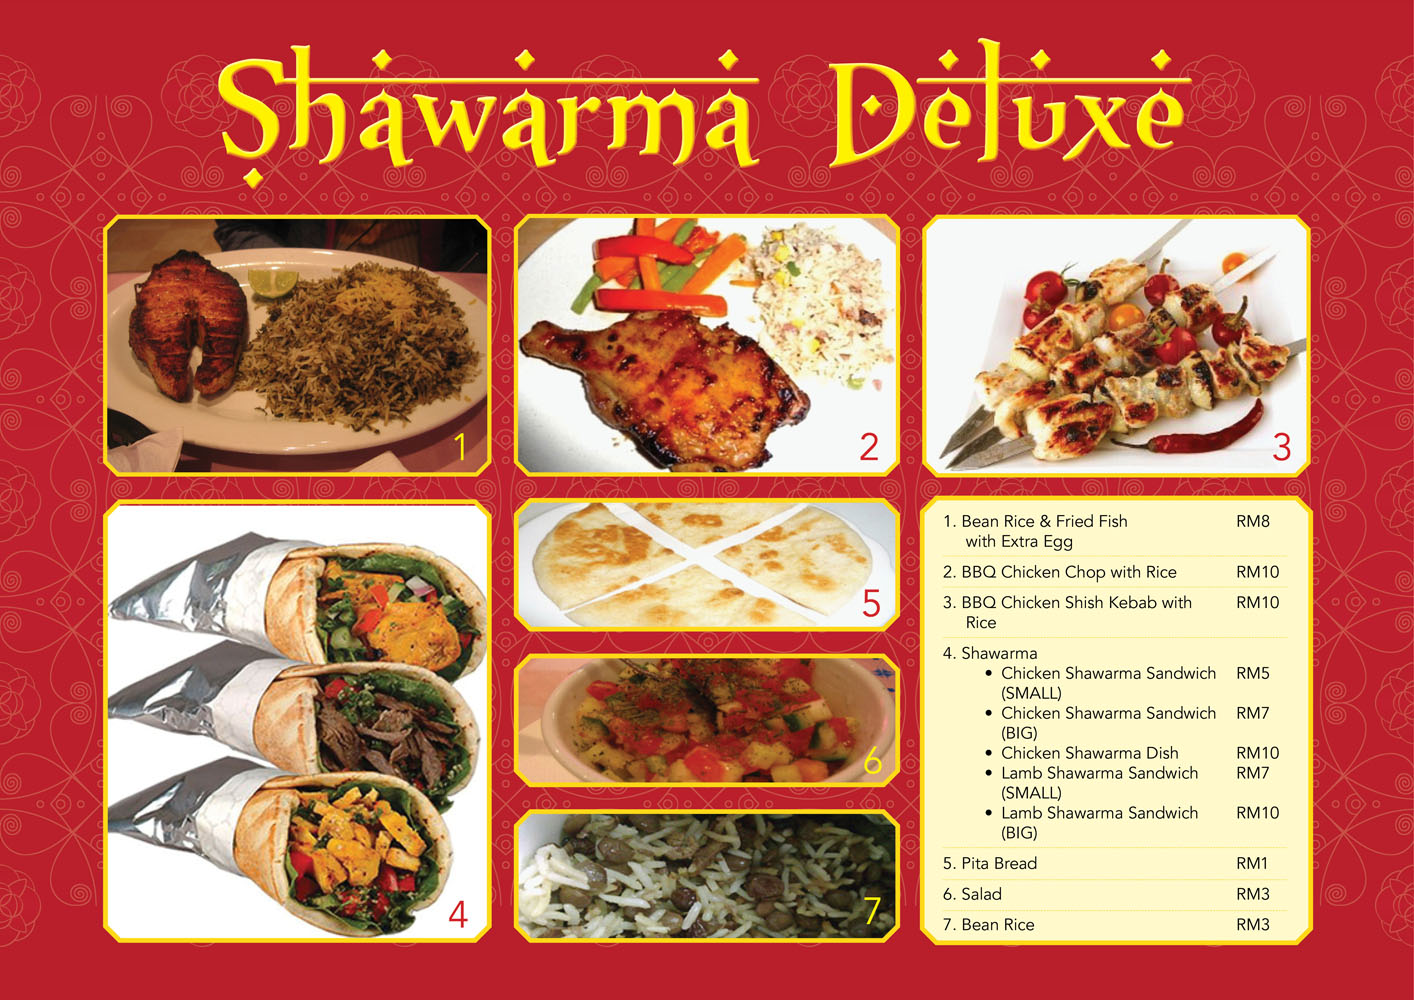 Empire State of Dreams: Shawarma Deluxe Menu